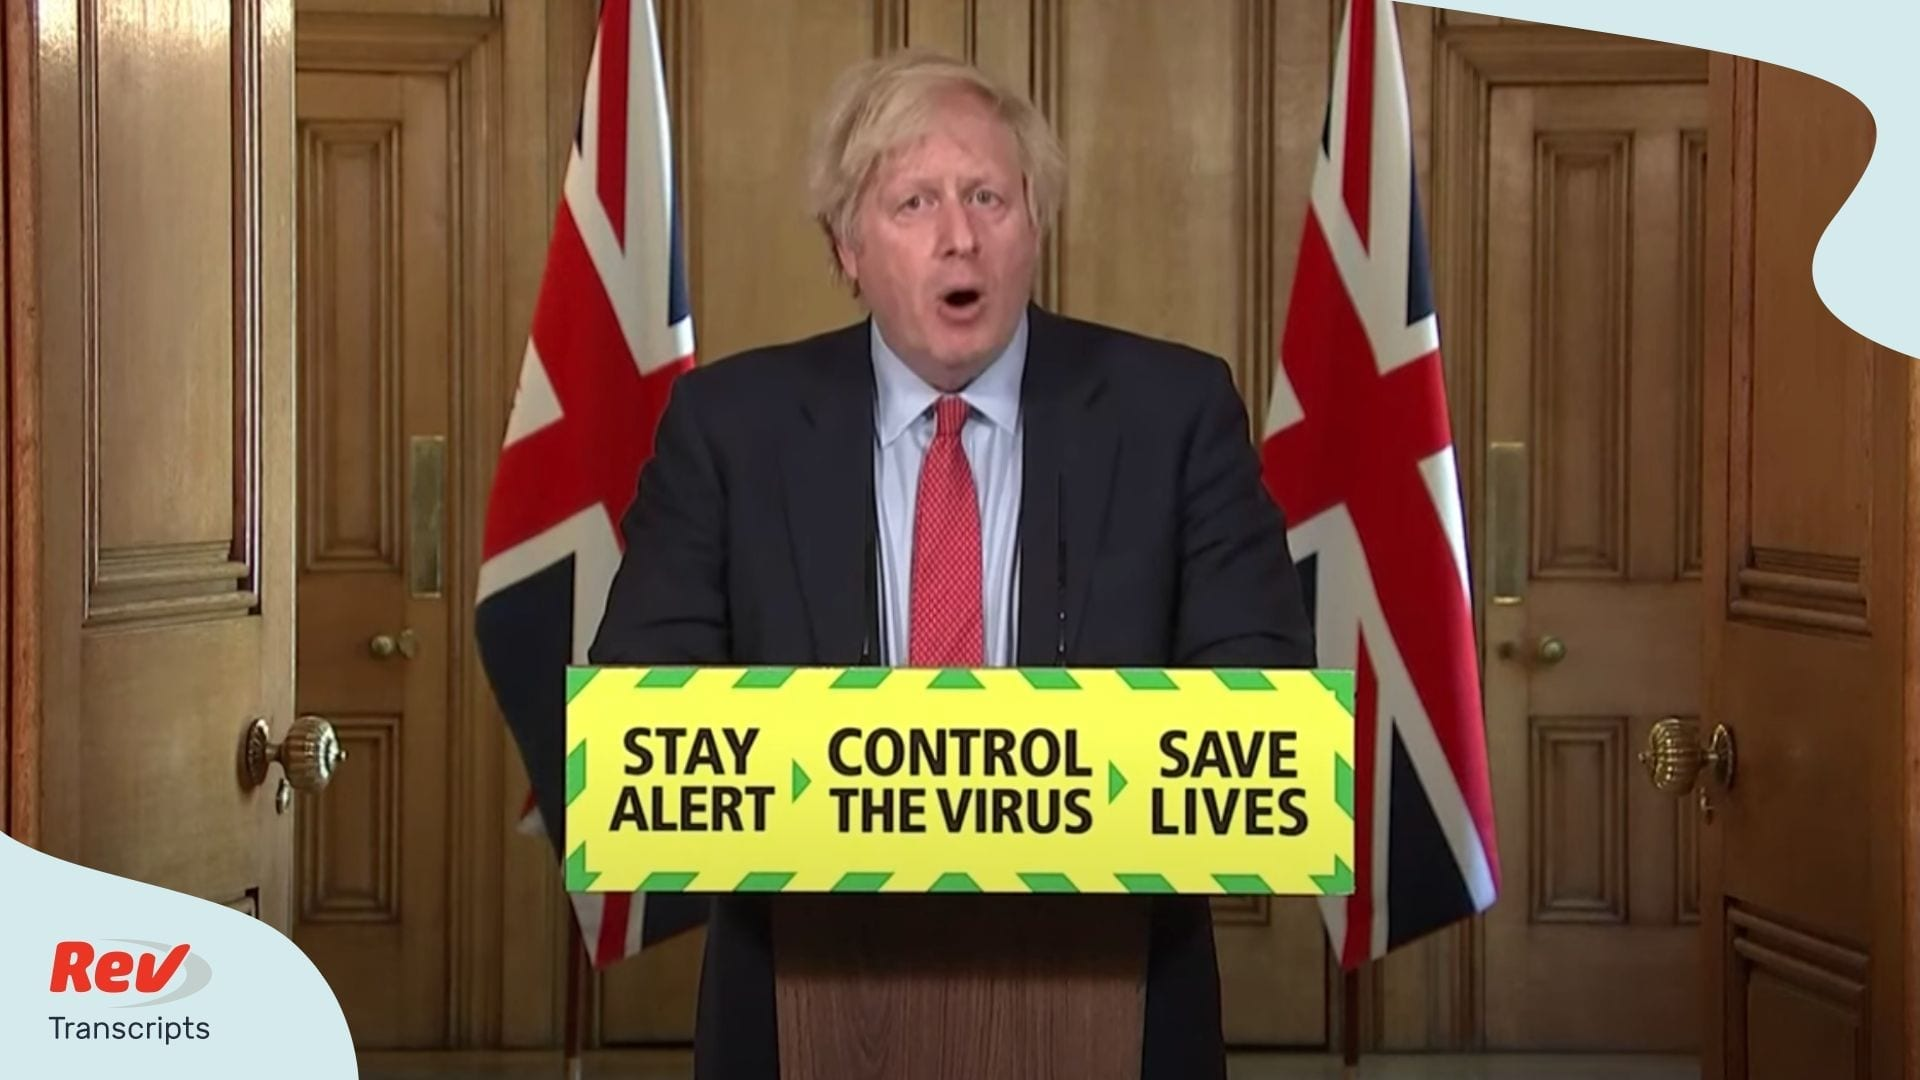 Boris Johnson Press Conference May 28